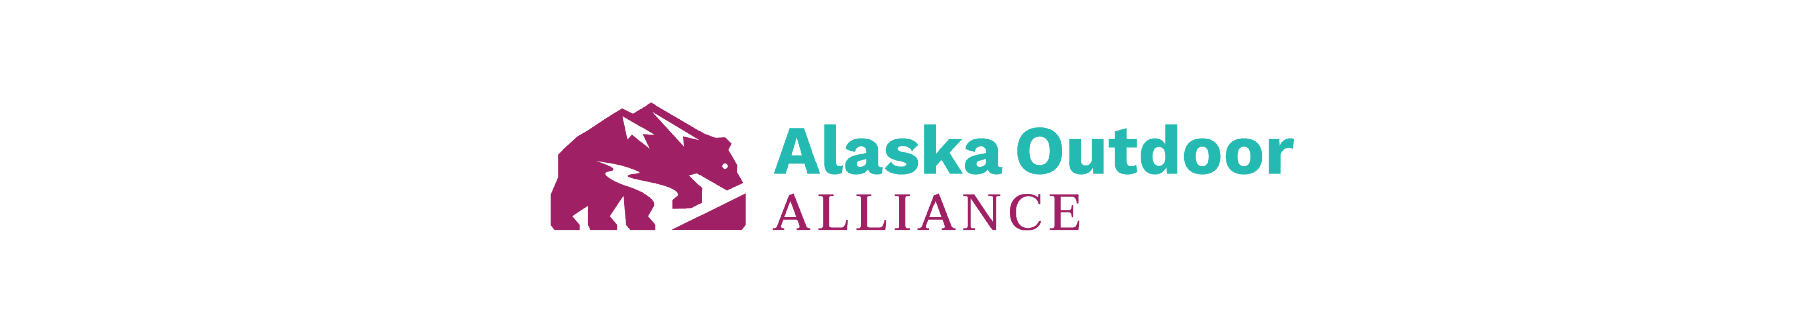 Alaska Outdoor Alliance